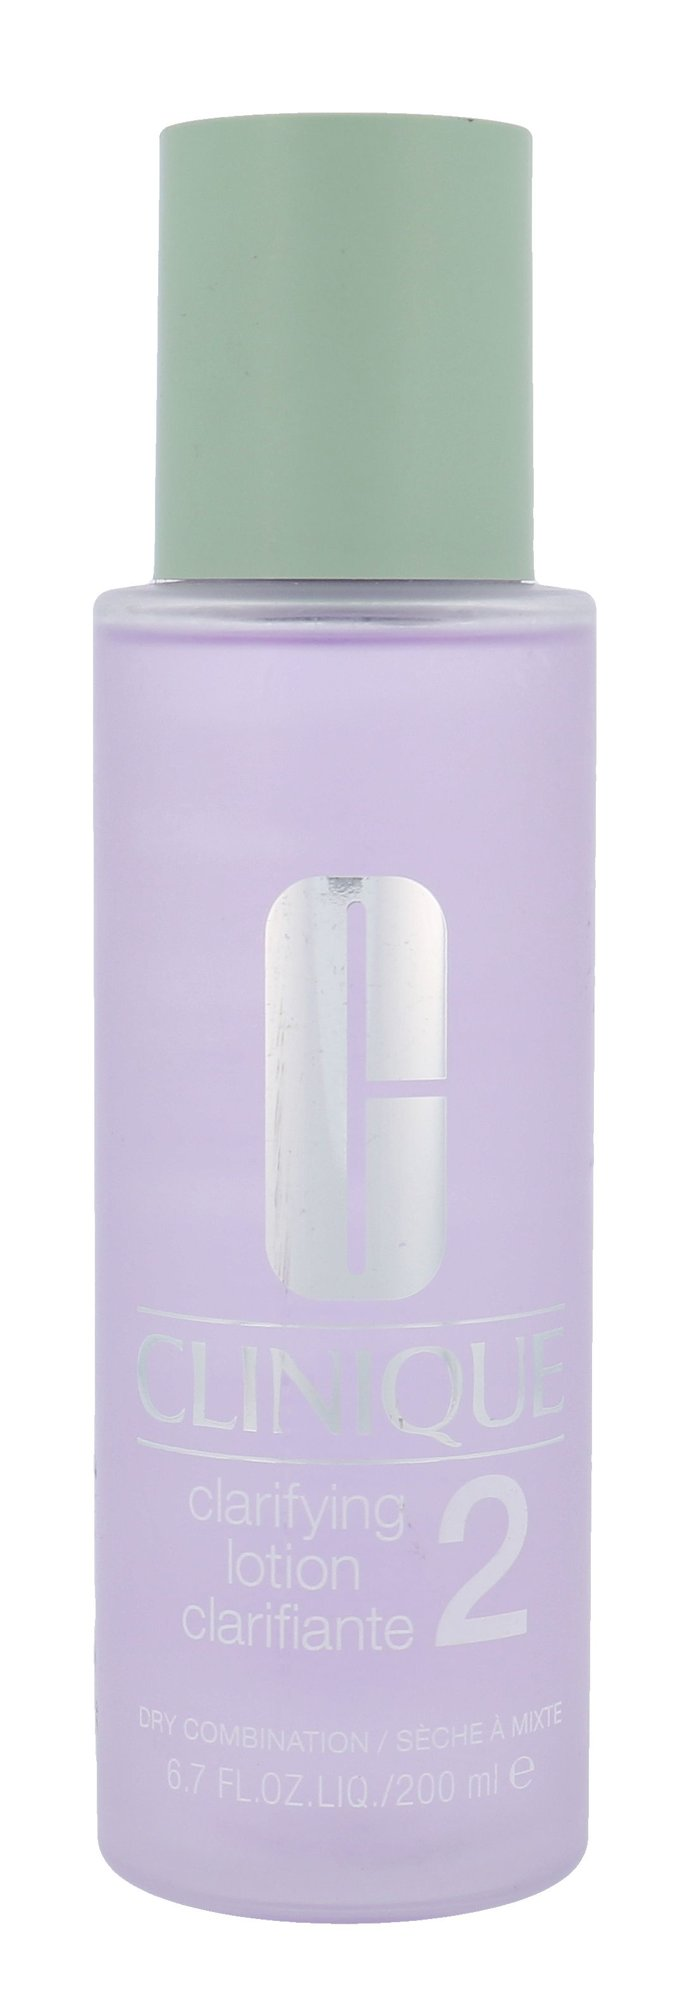 Clinique 3-Step Skin Care 2 Cosmetic 200ml